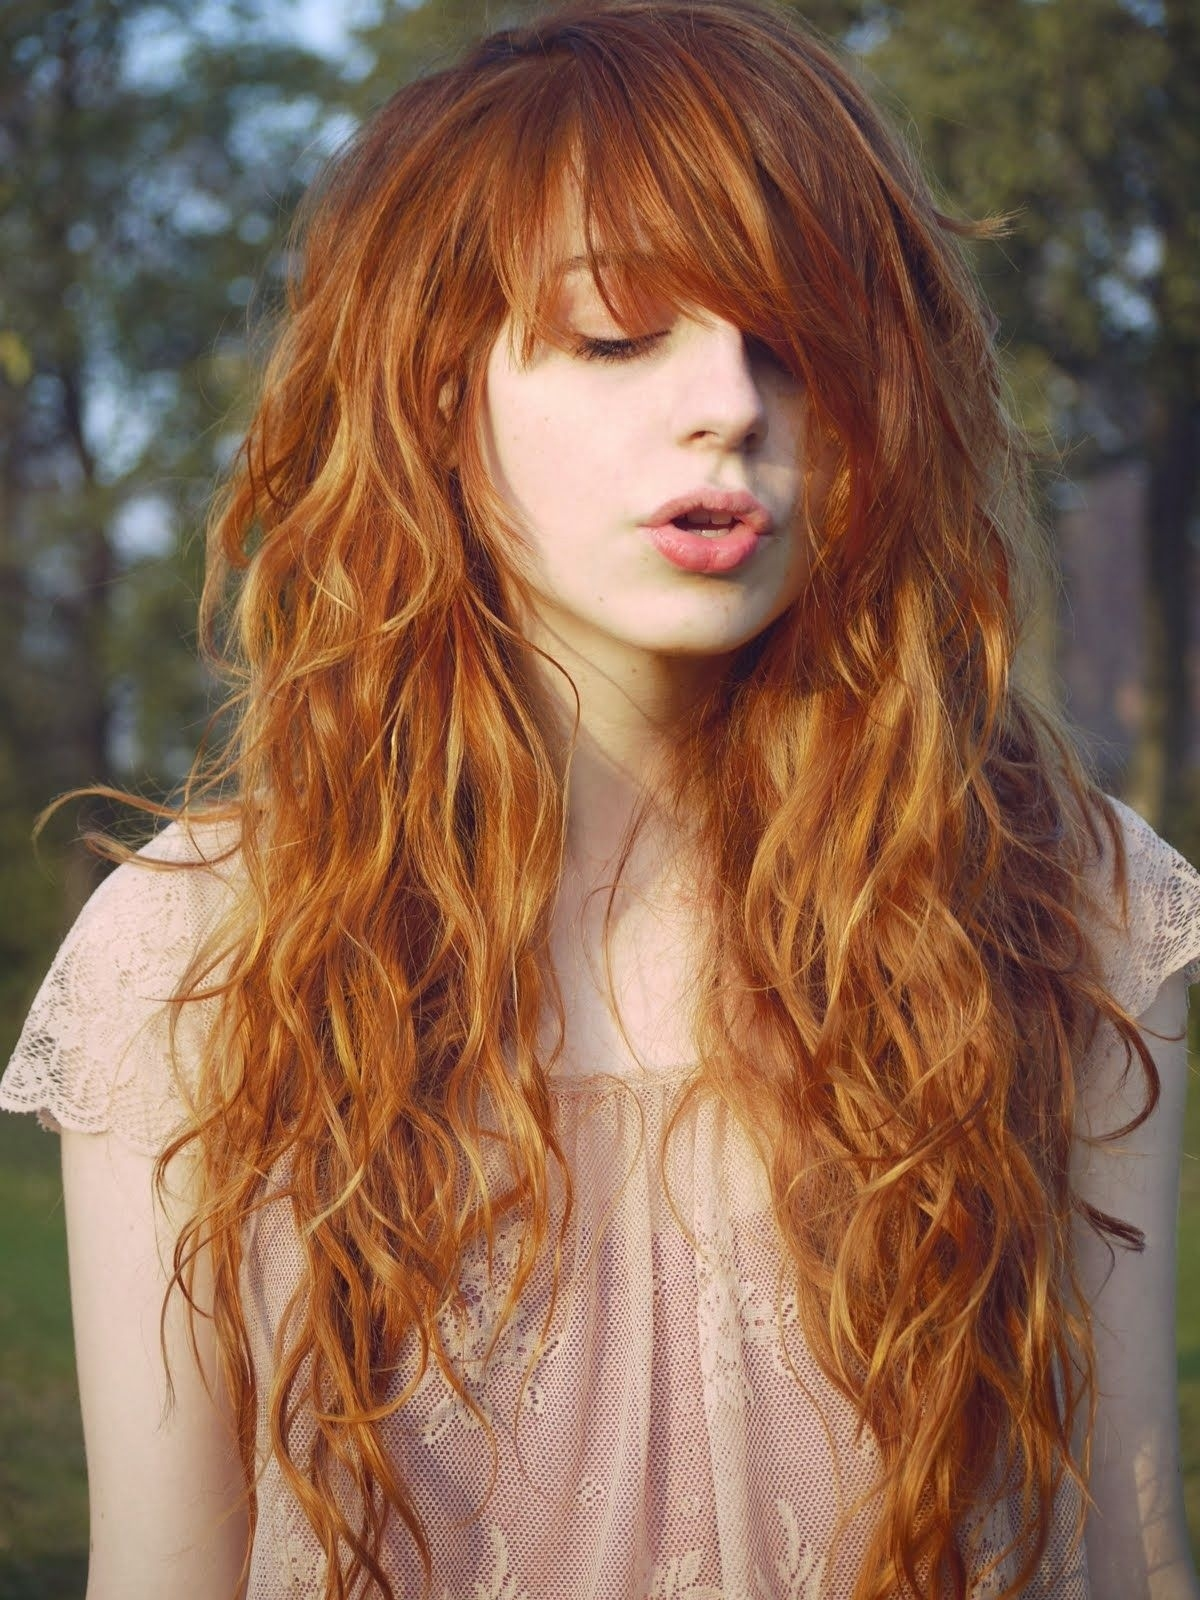 Pin By Priscilla Holguin On Hair Ideas | Pinterest | Red Hair, Pixie throughout Haircuts For Wavy Red Hair